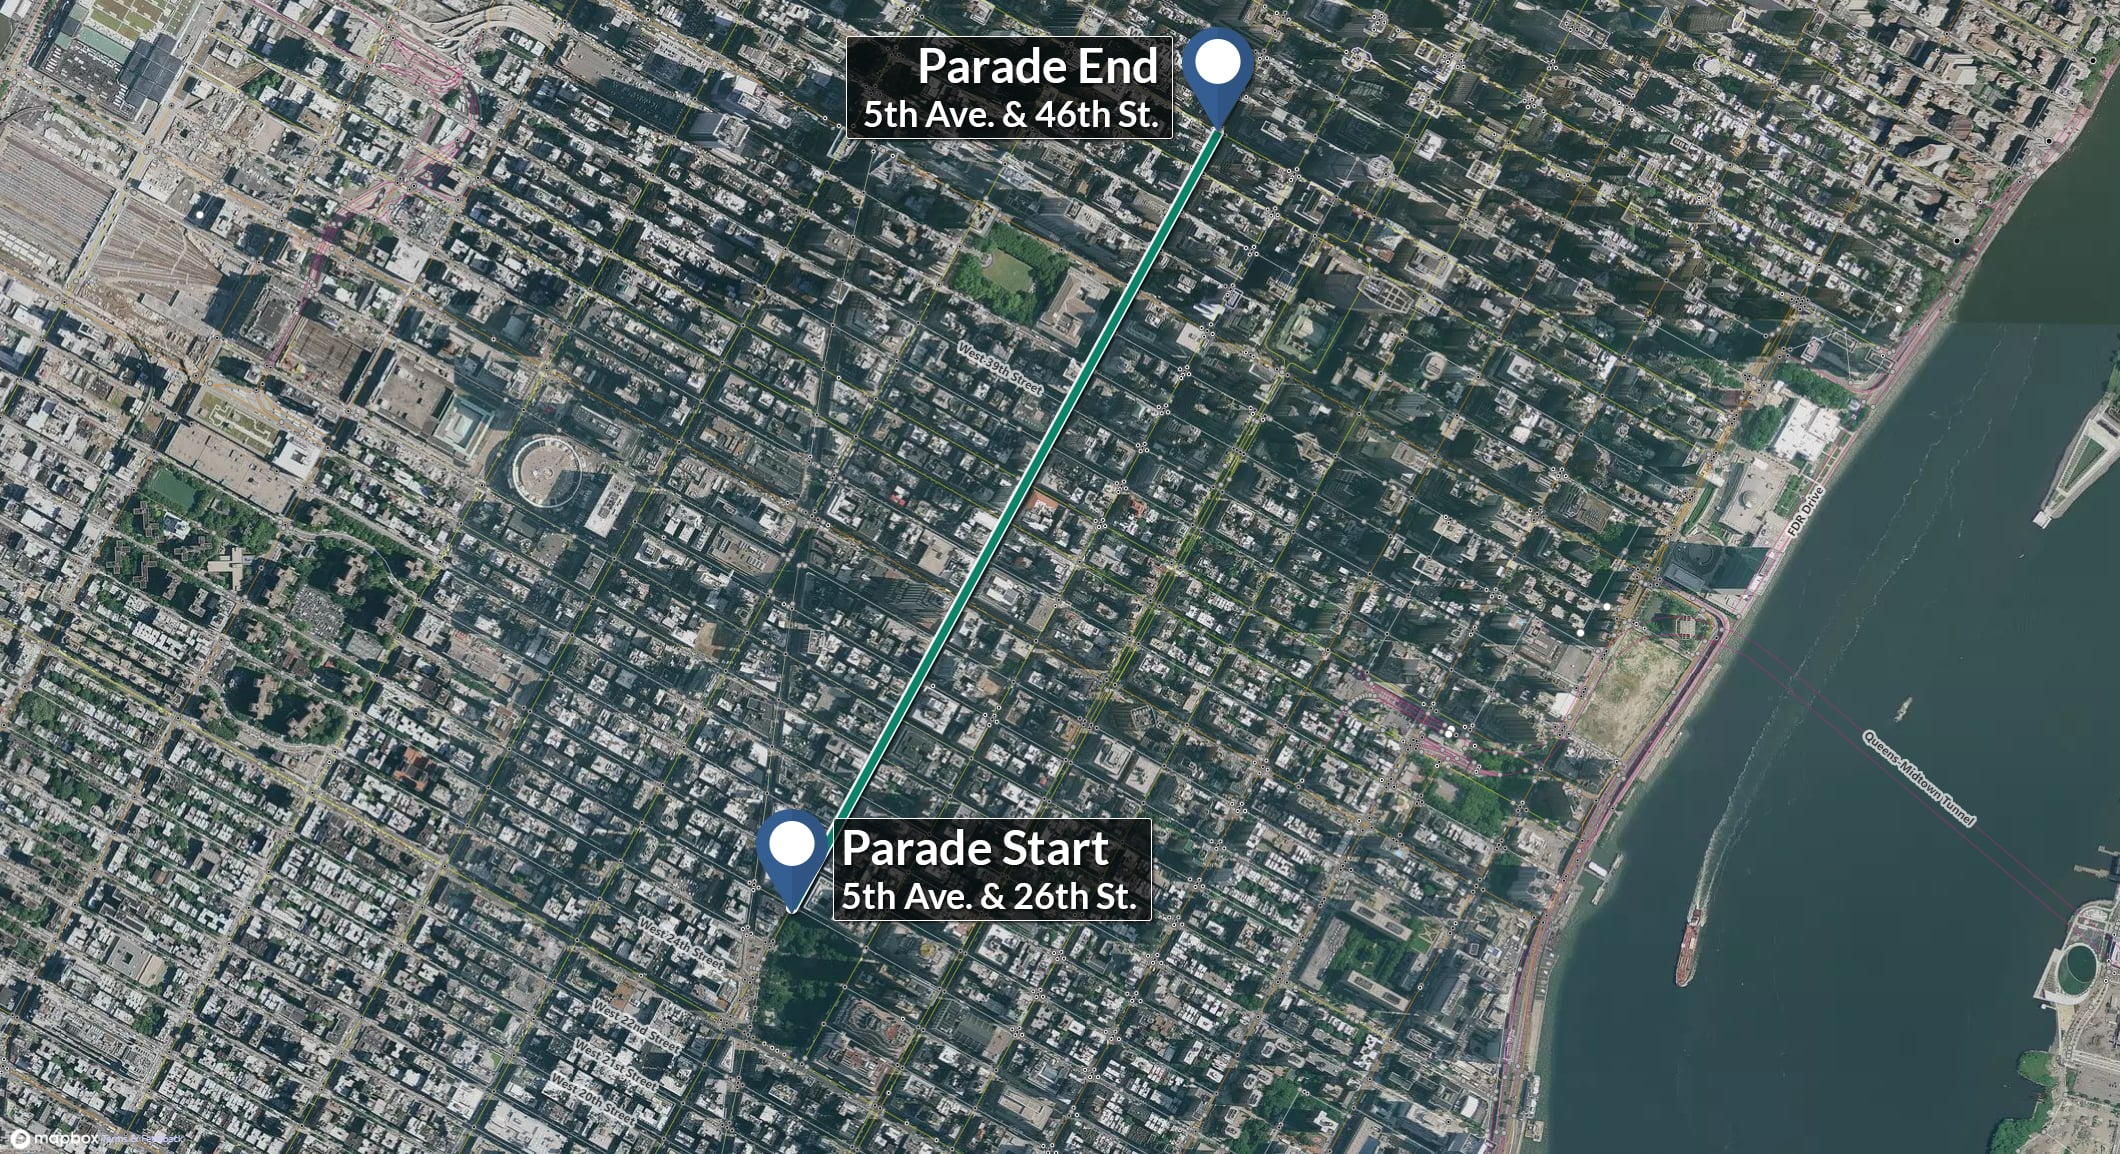 The Parade will start at 5th & 26th and proceed north to 5th and 46.